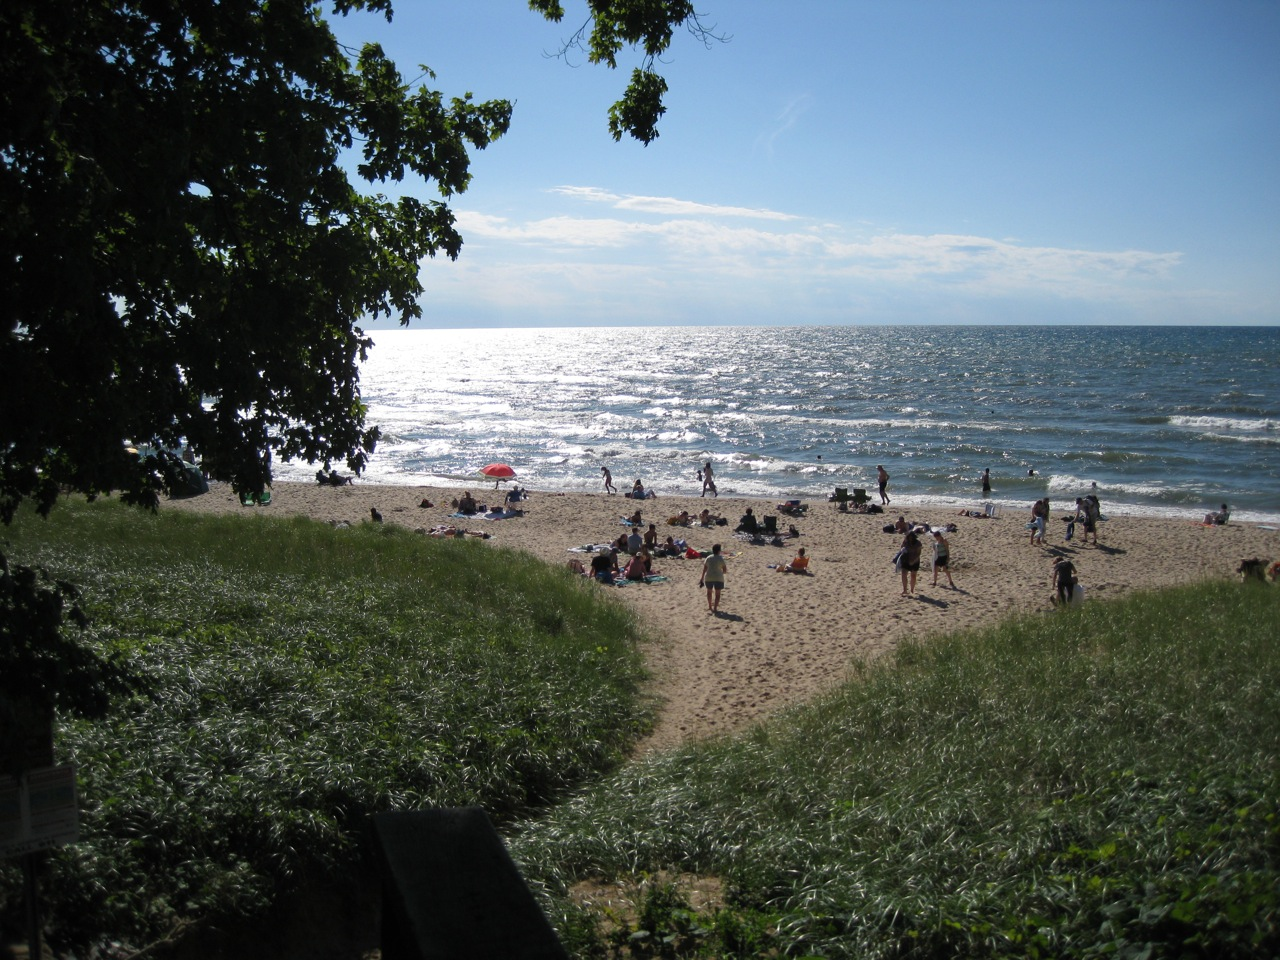 Douglas Beach Is A Small Public Just Outside Of Saugatuck Mi Over An Hour S Drive From Kalamazoo Access Down Steep Flight Stairs